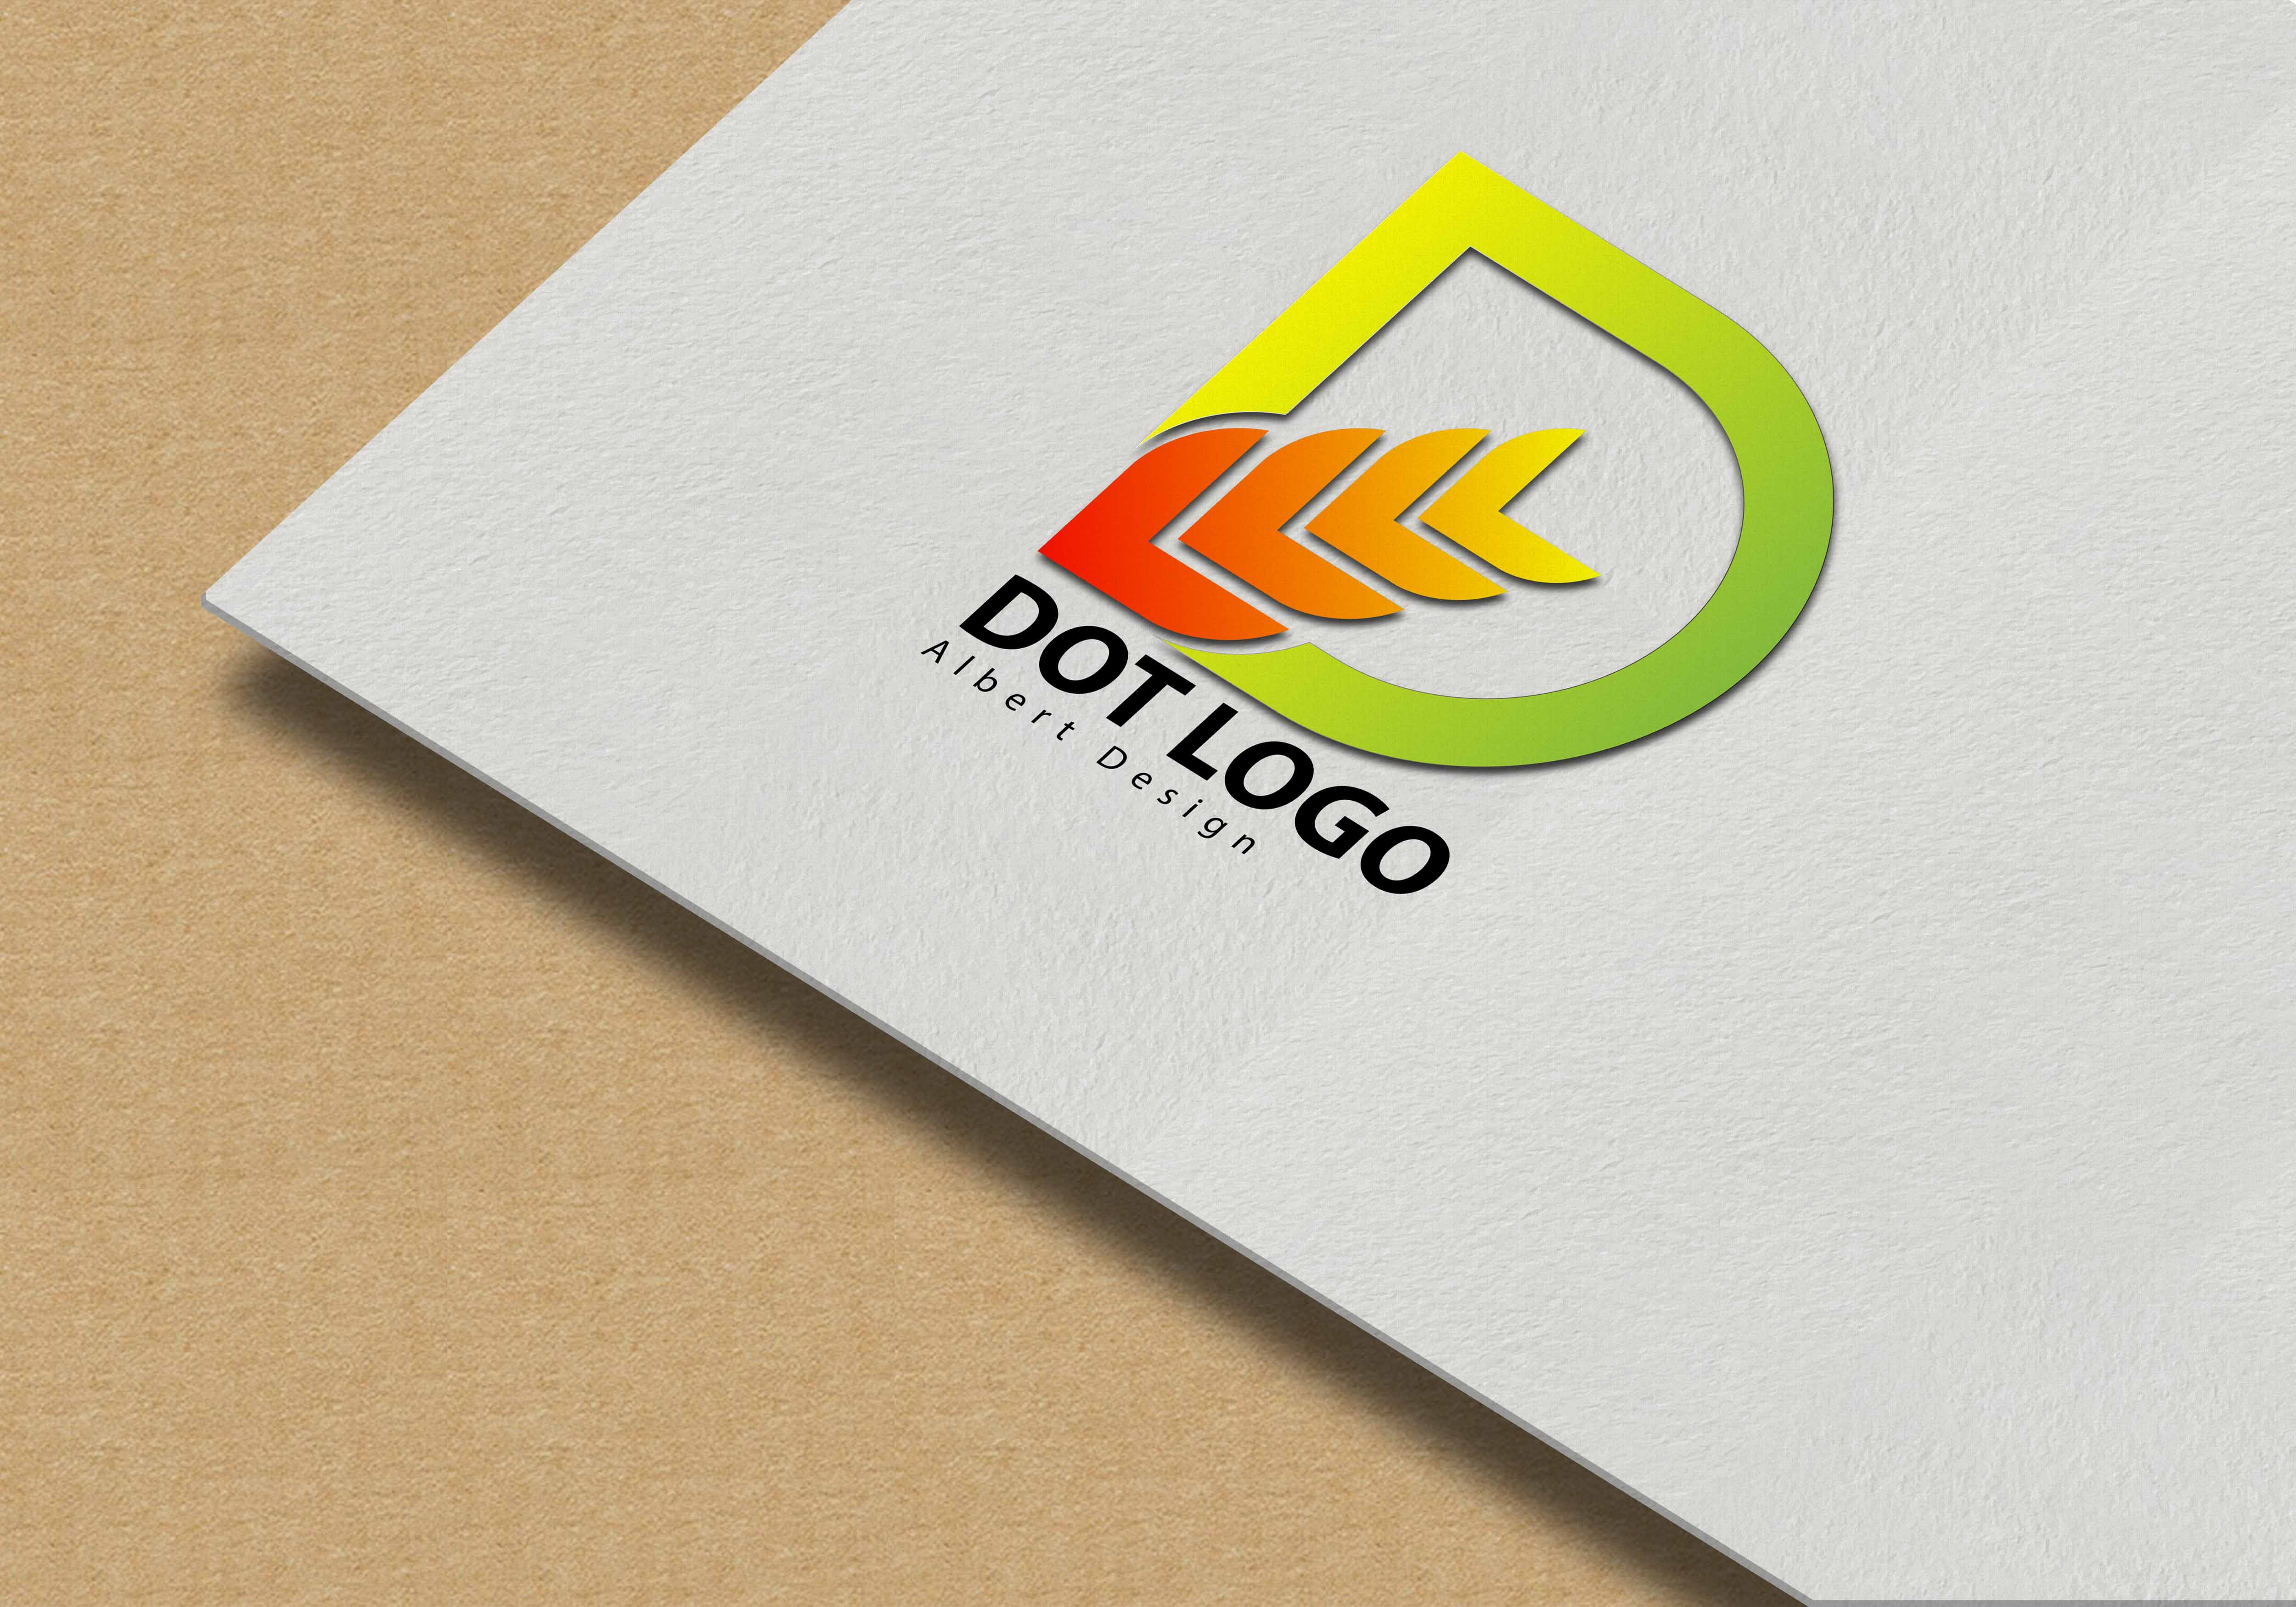 I will design professional logo and modern business logo or branding